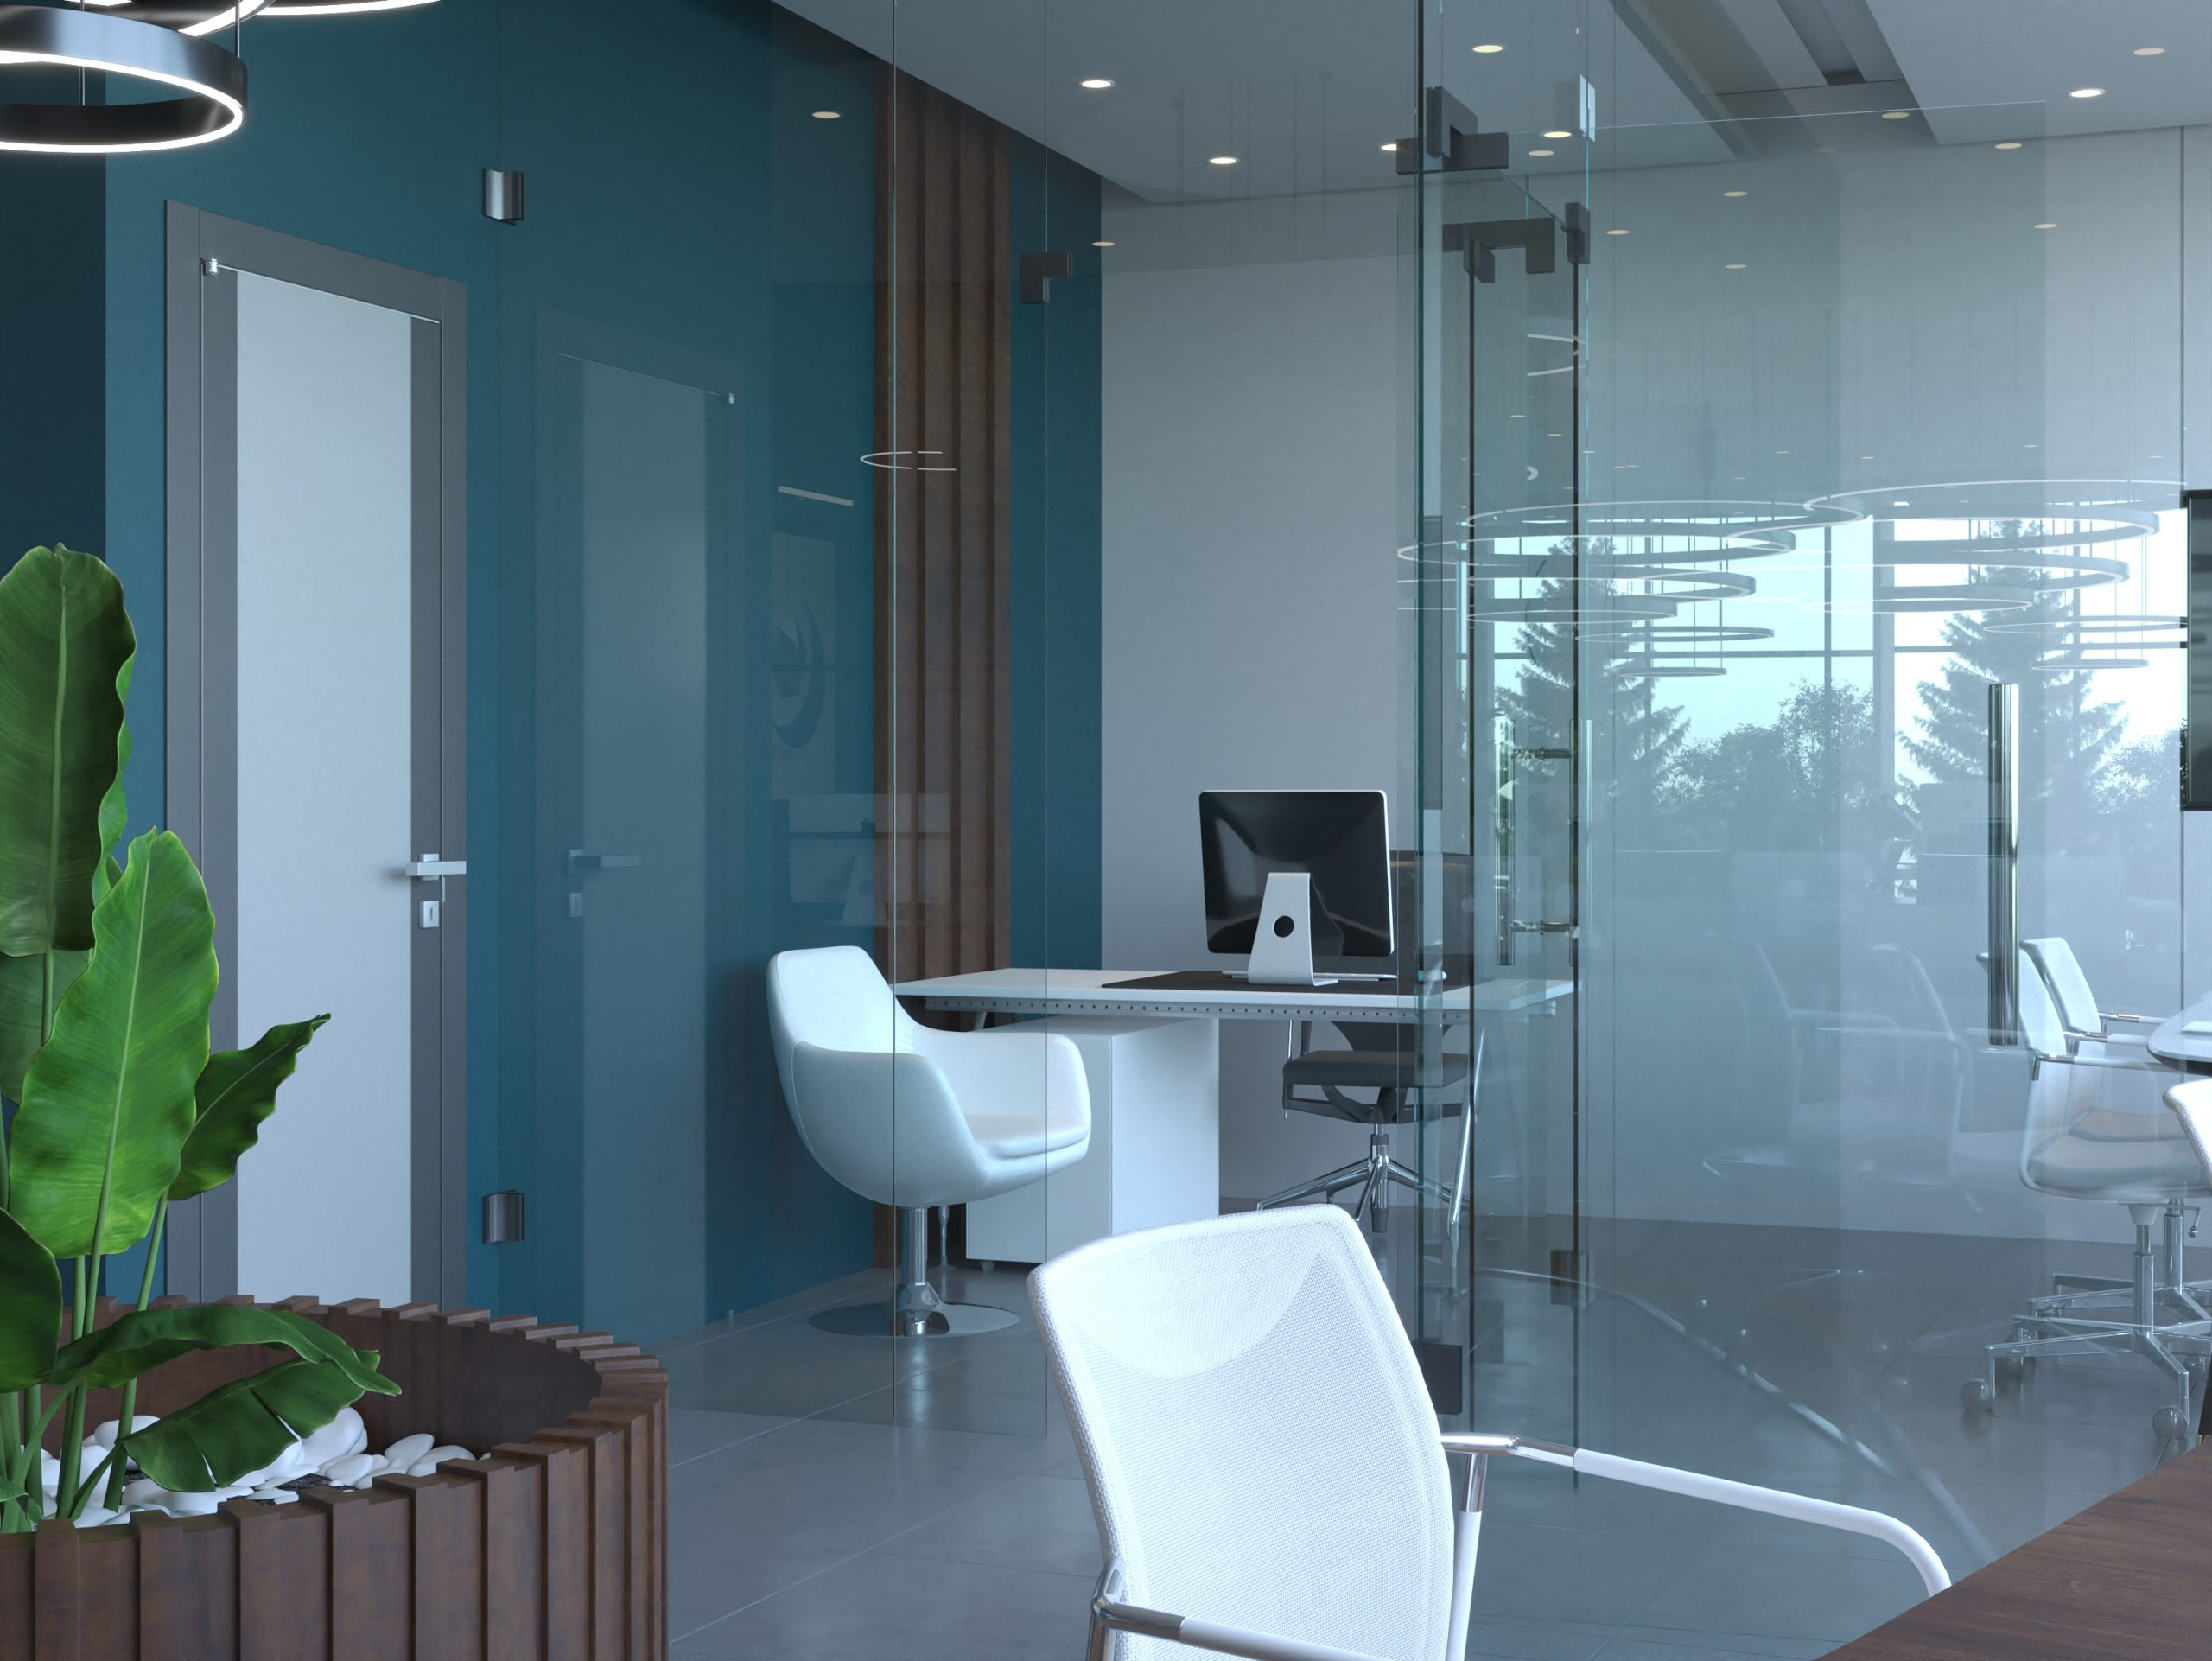 OFFICE DECORATION - WOODEN STRIPS  - GLASS WALLS